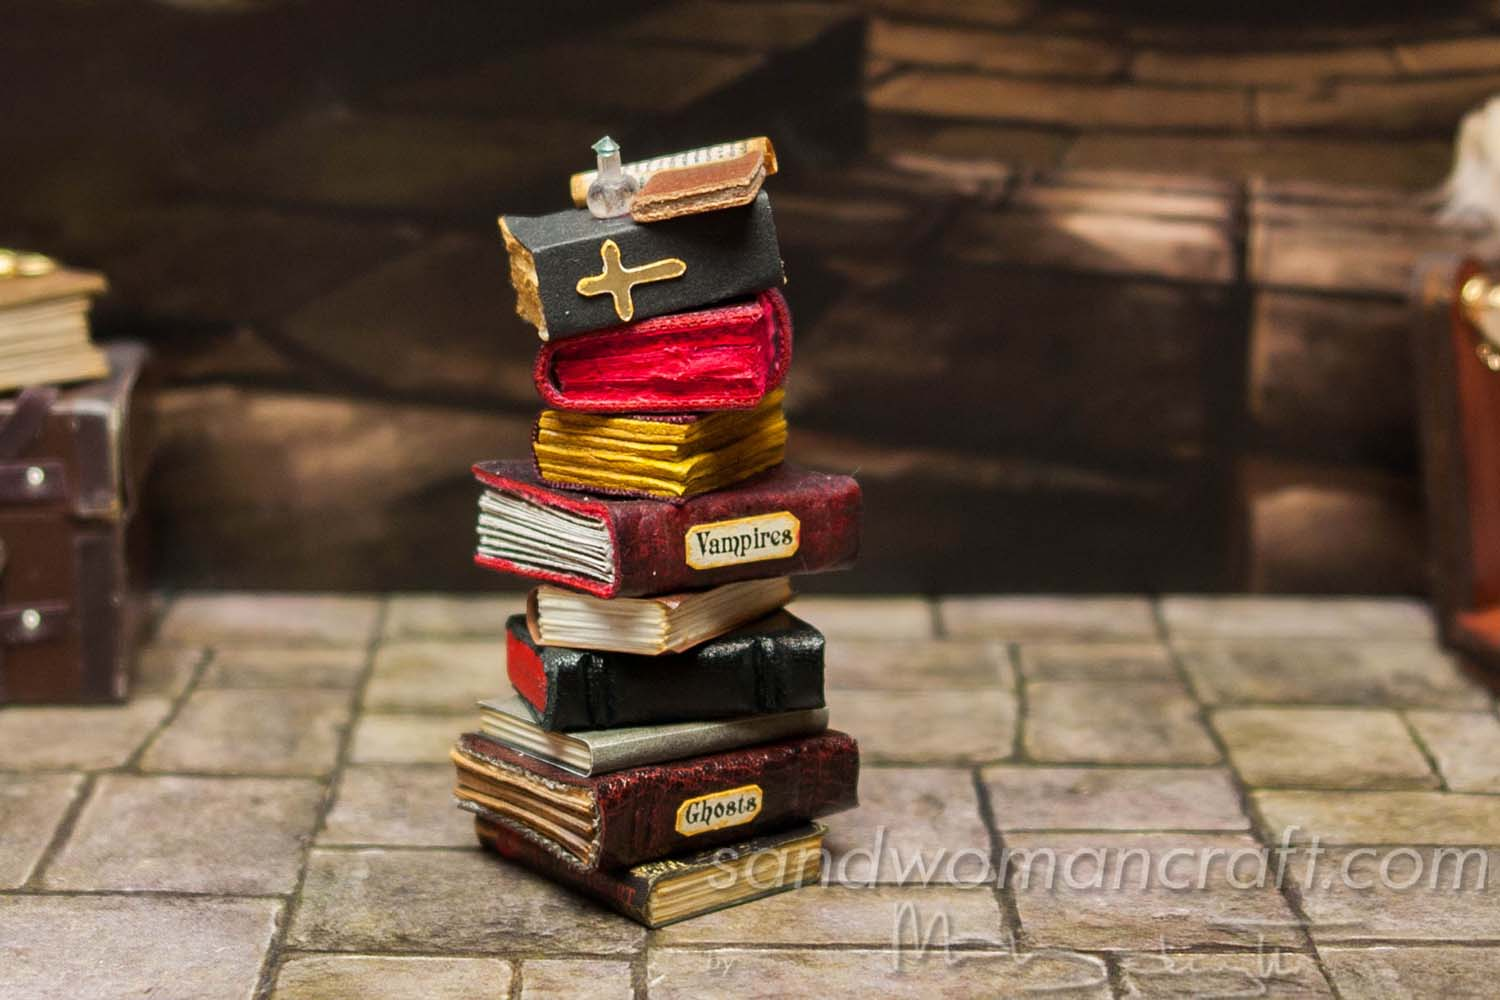 Spooky pile of miniature leather decorated books... Vampire theme.